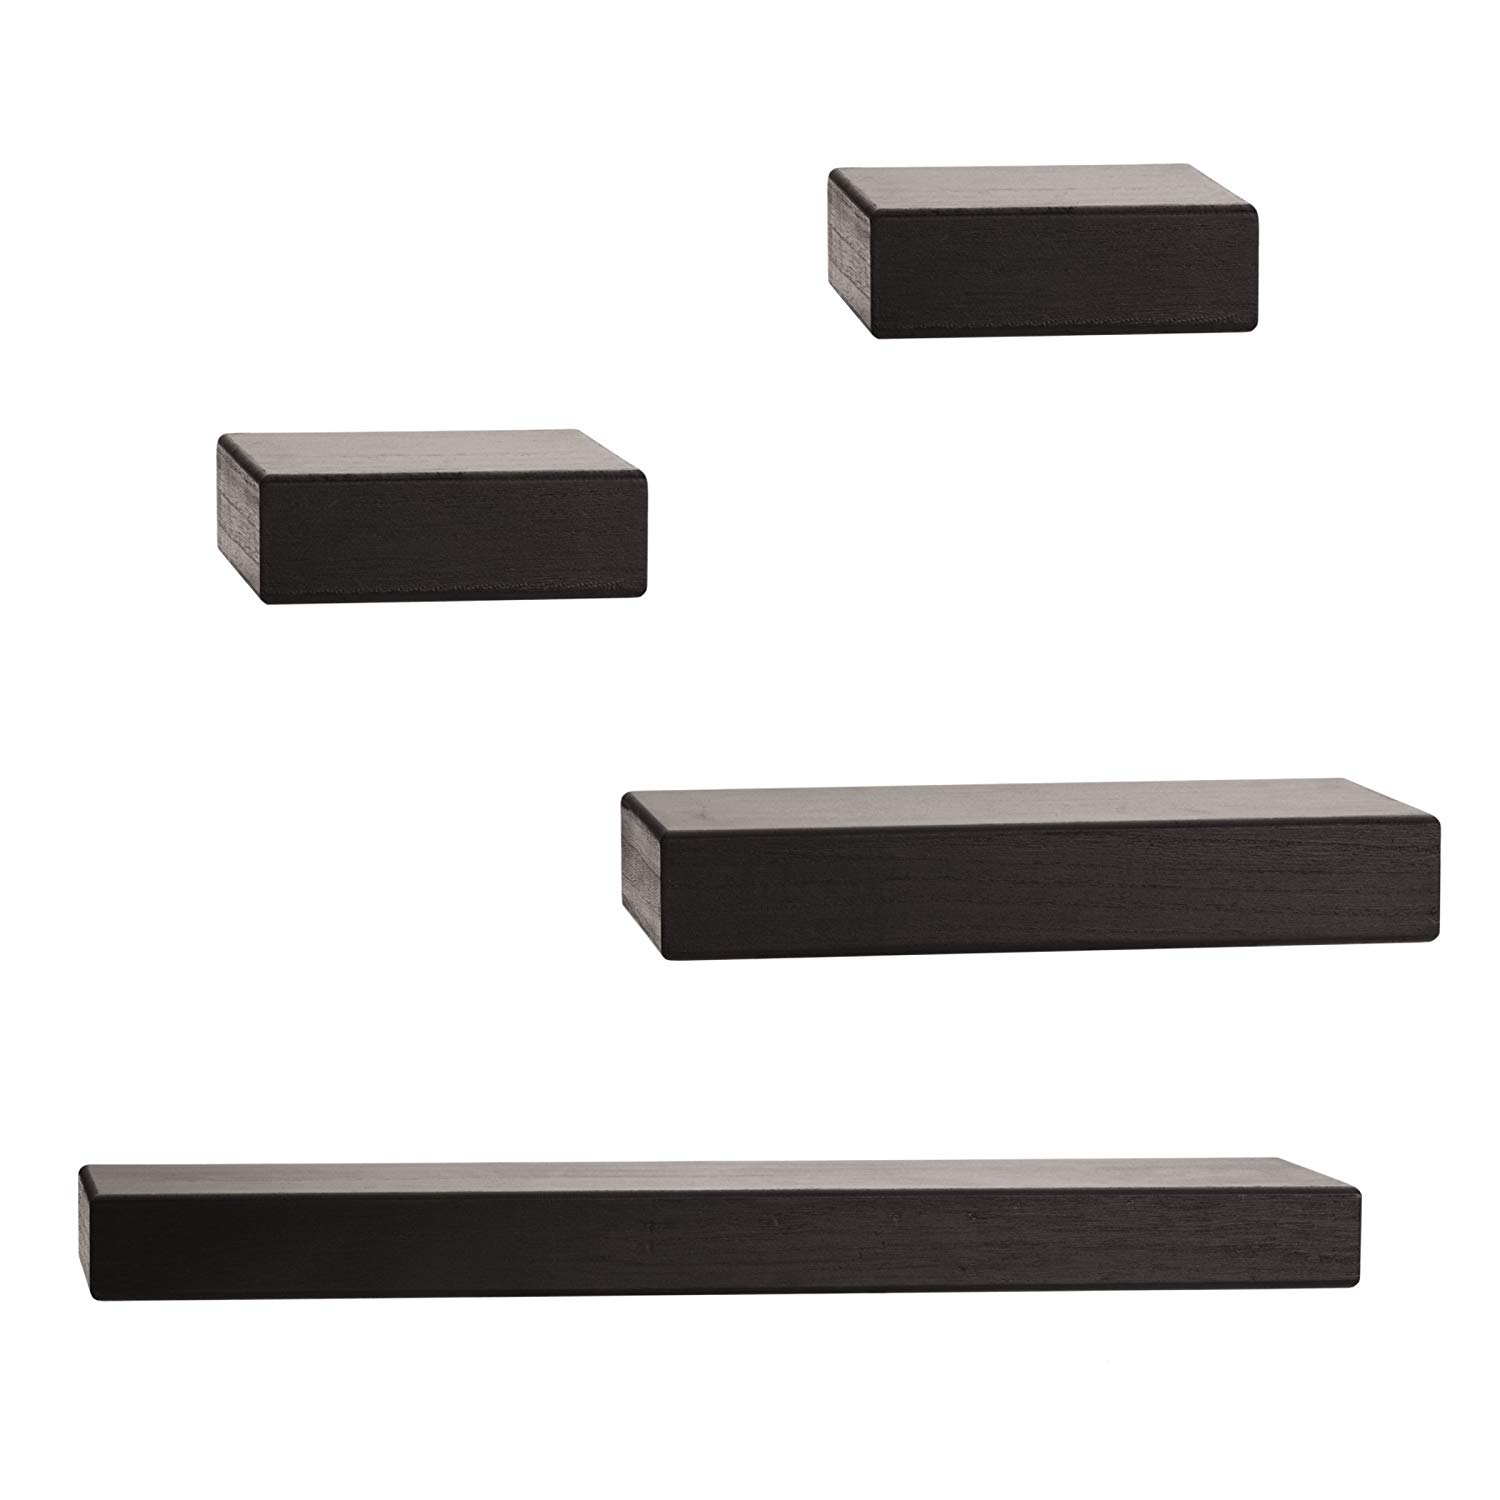 melannco floating wall mount thick chunky shelves set black shelf home kitchen ture plans cable management vinyl tile over plywood holman installation problems decorative hooks